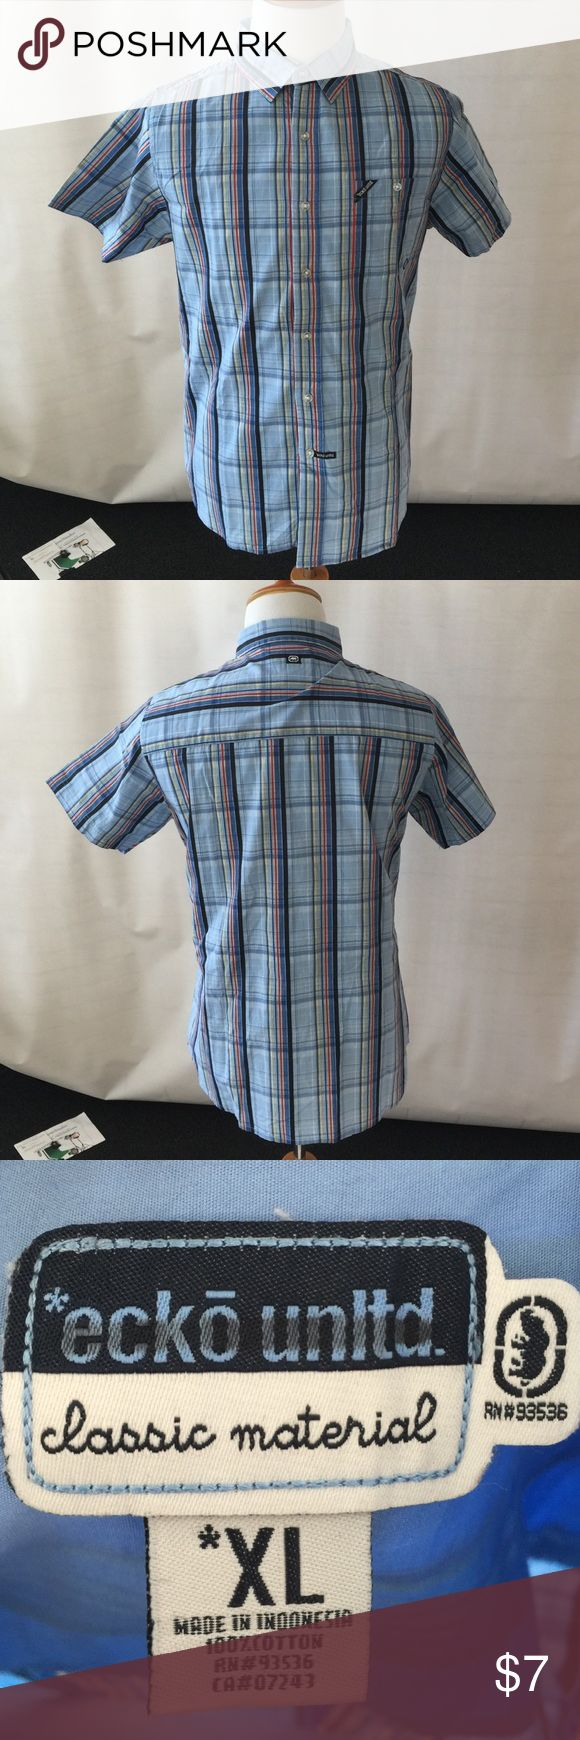 Men Short-sleeved Striped Blue Buttoned-Down Shirt Short-sleeved Striped Blue Buttoned-Down Shirt. Cool and stylish. Gently used. No tear/stain. Label says XL but fits more like an L. Ecko Unlimited Shirts Casual Button Down Shirts